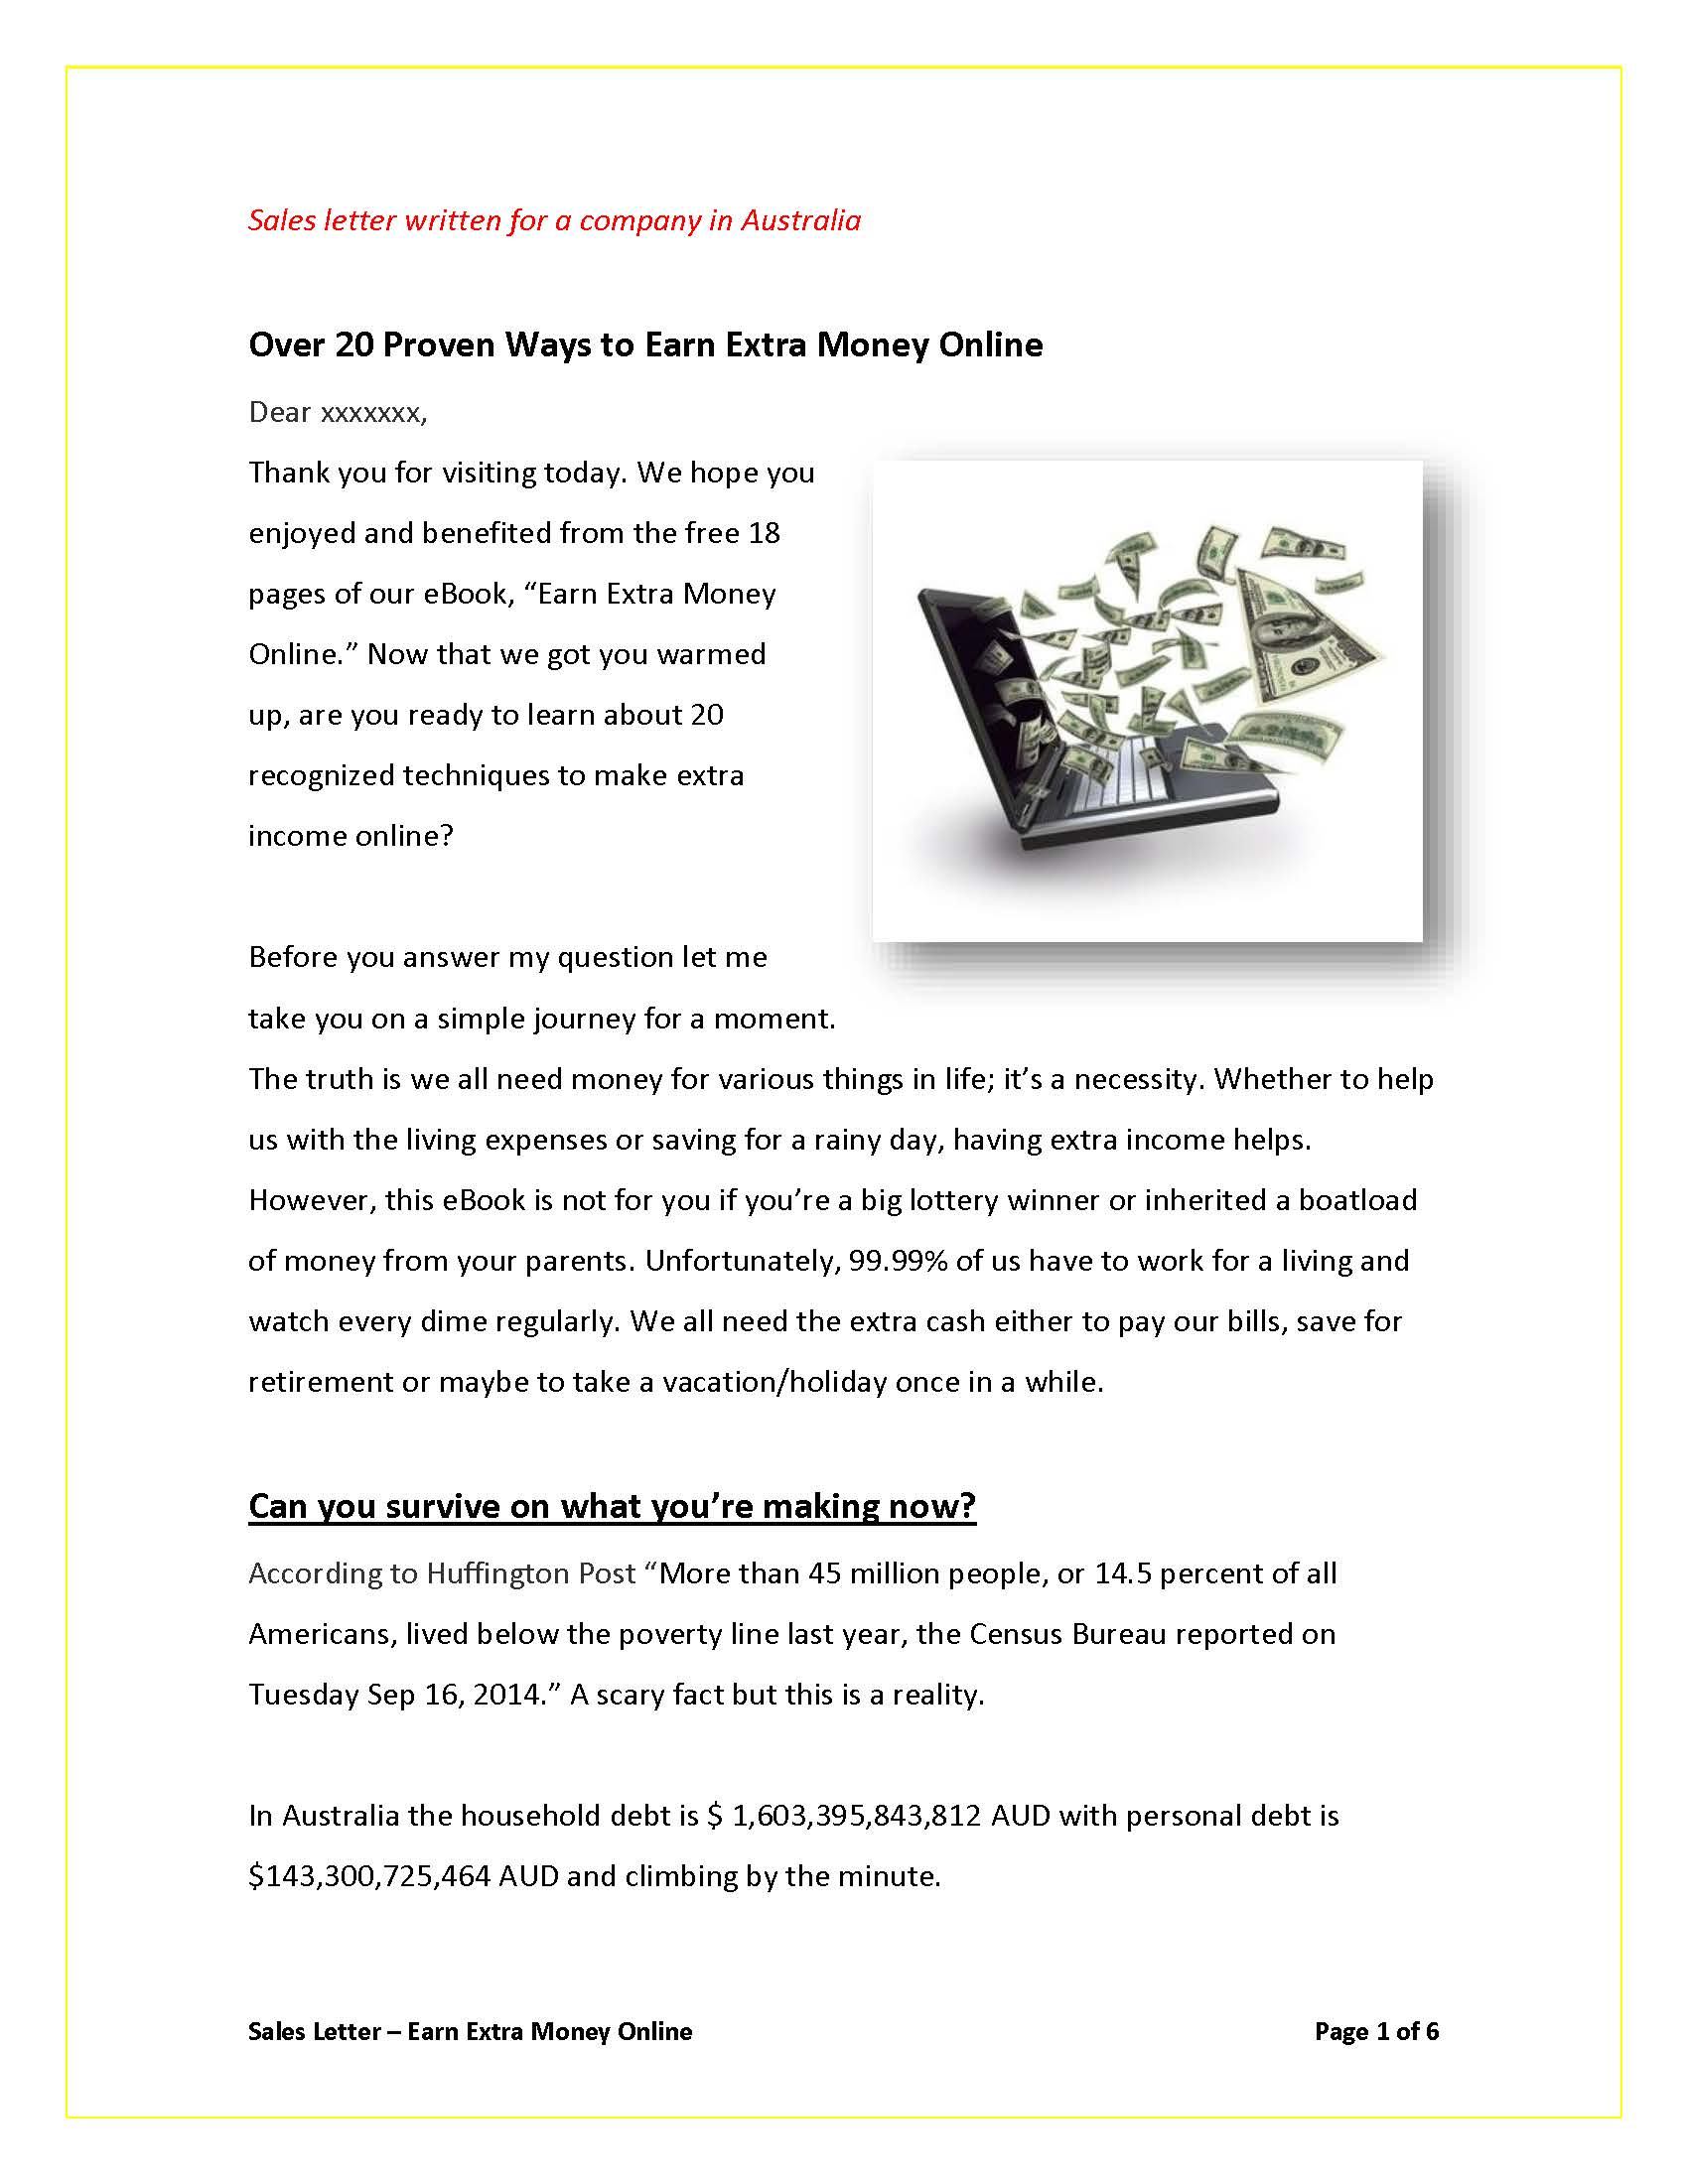 Sales Letter - How To Earn Money Online_Page_1